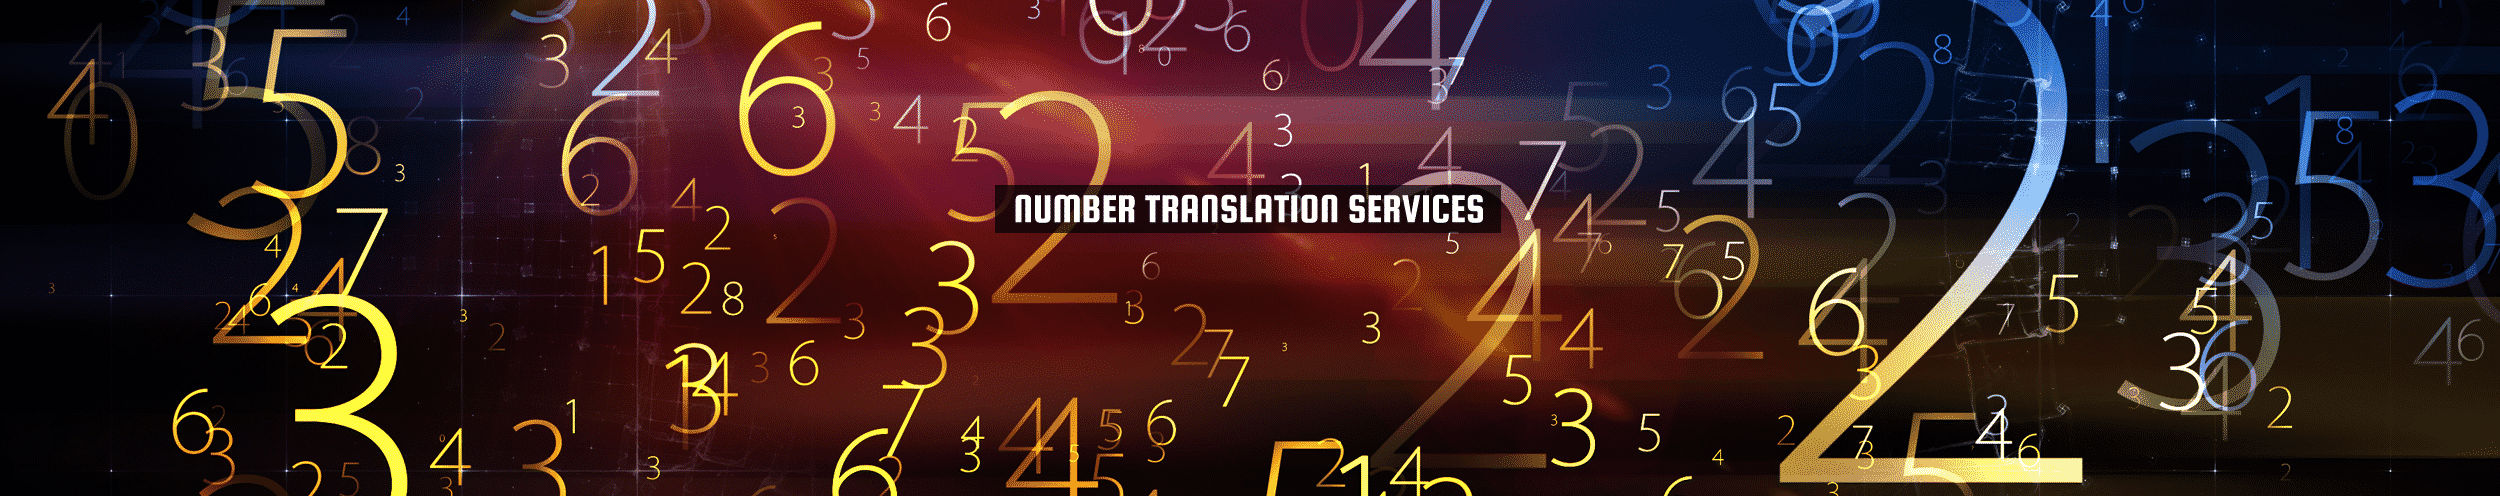 52Degrees Number Translation Services - funksjon bilde | serie gull og blå tall på svart bakgrunn | Telecom Solutions, Norwich